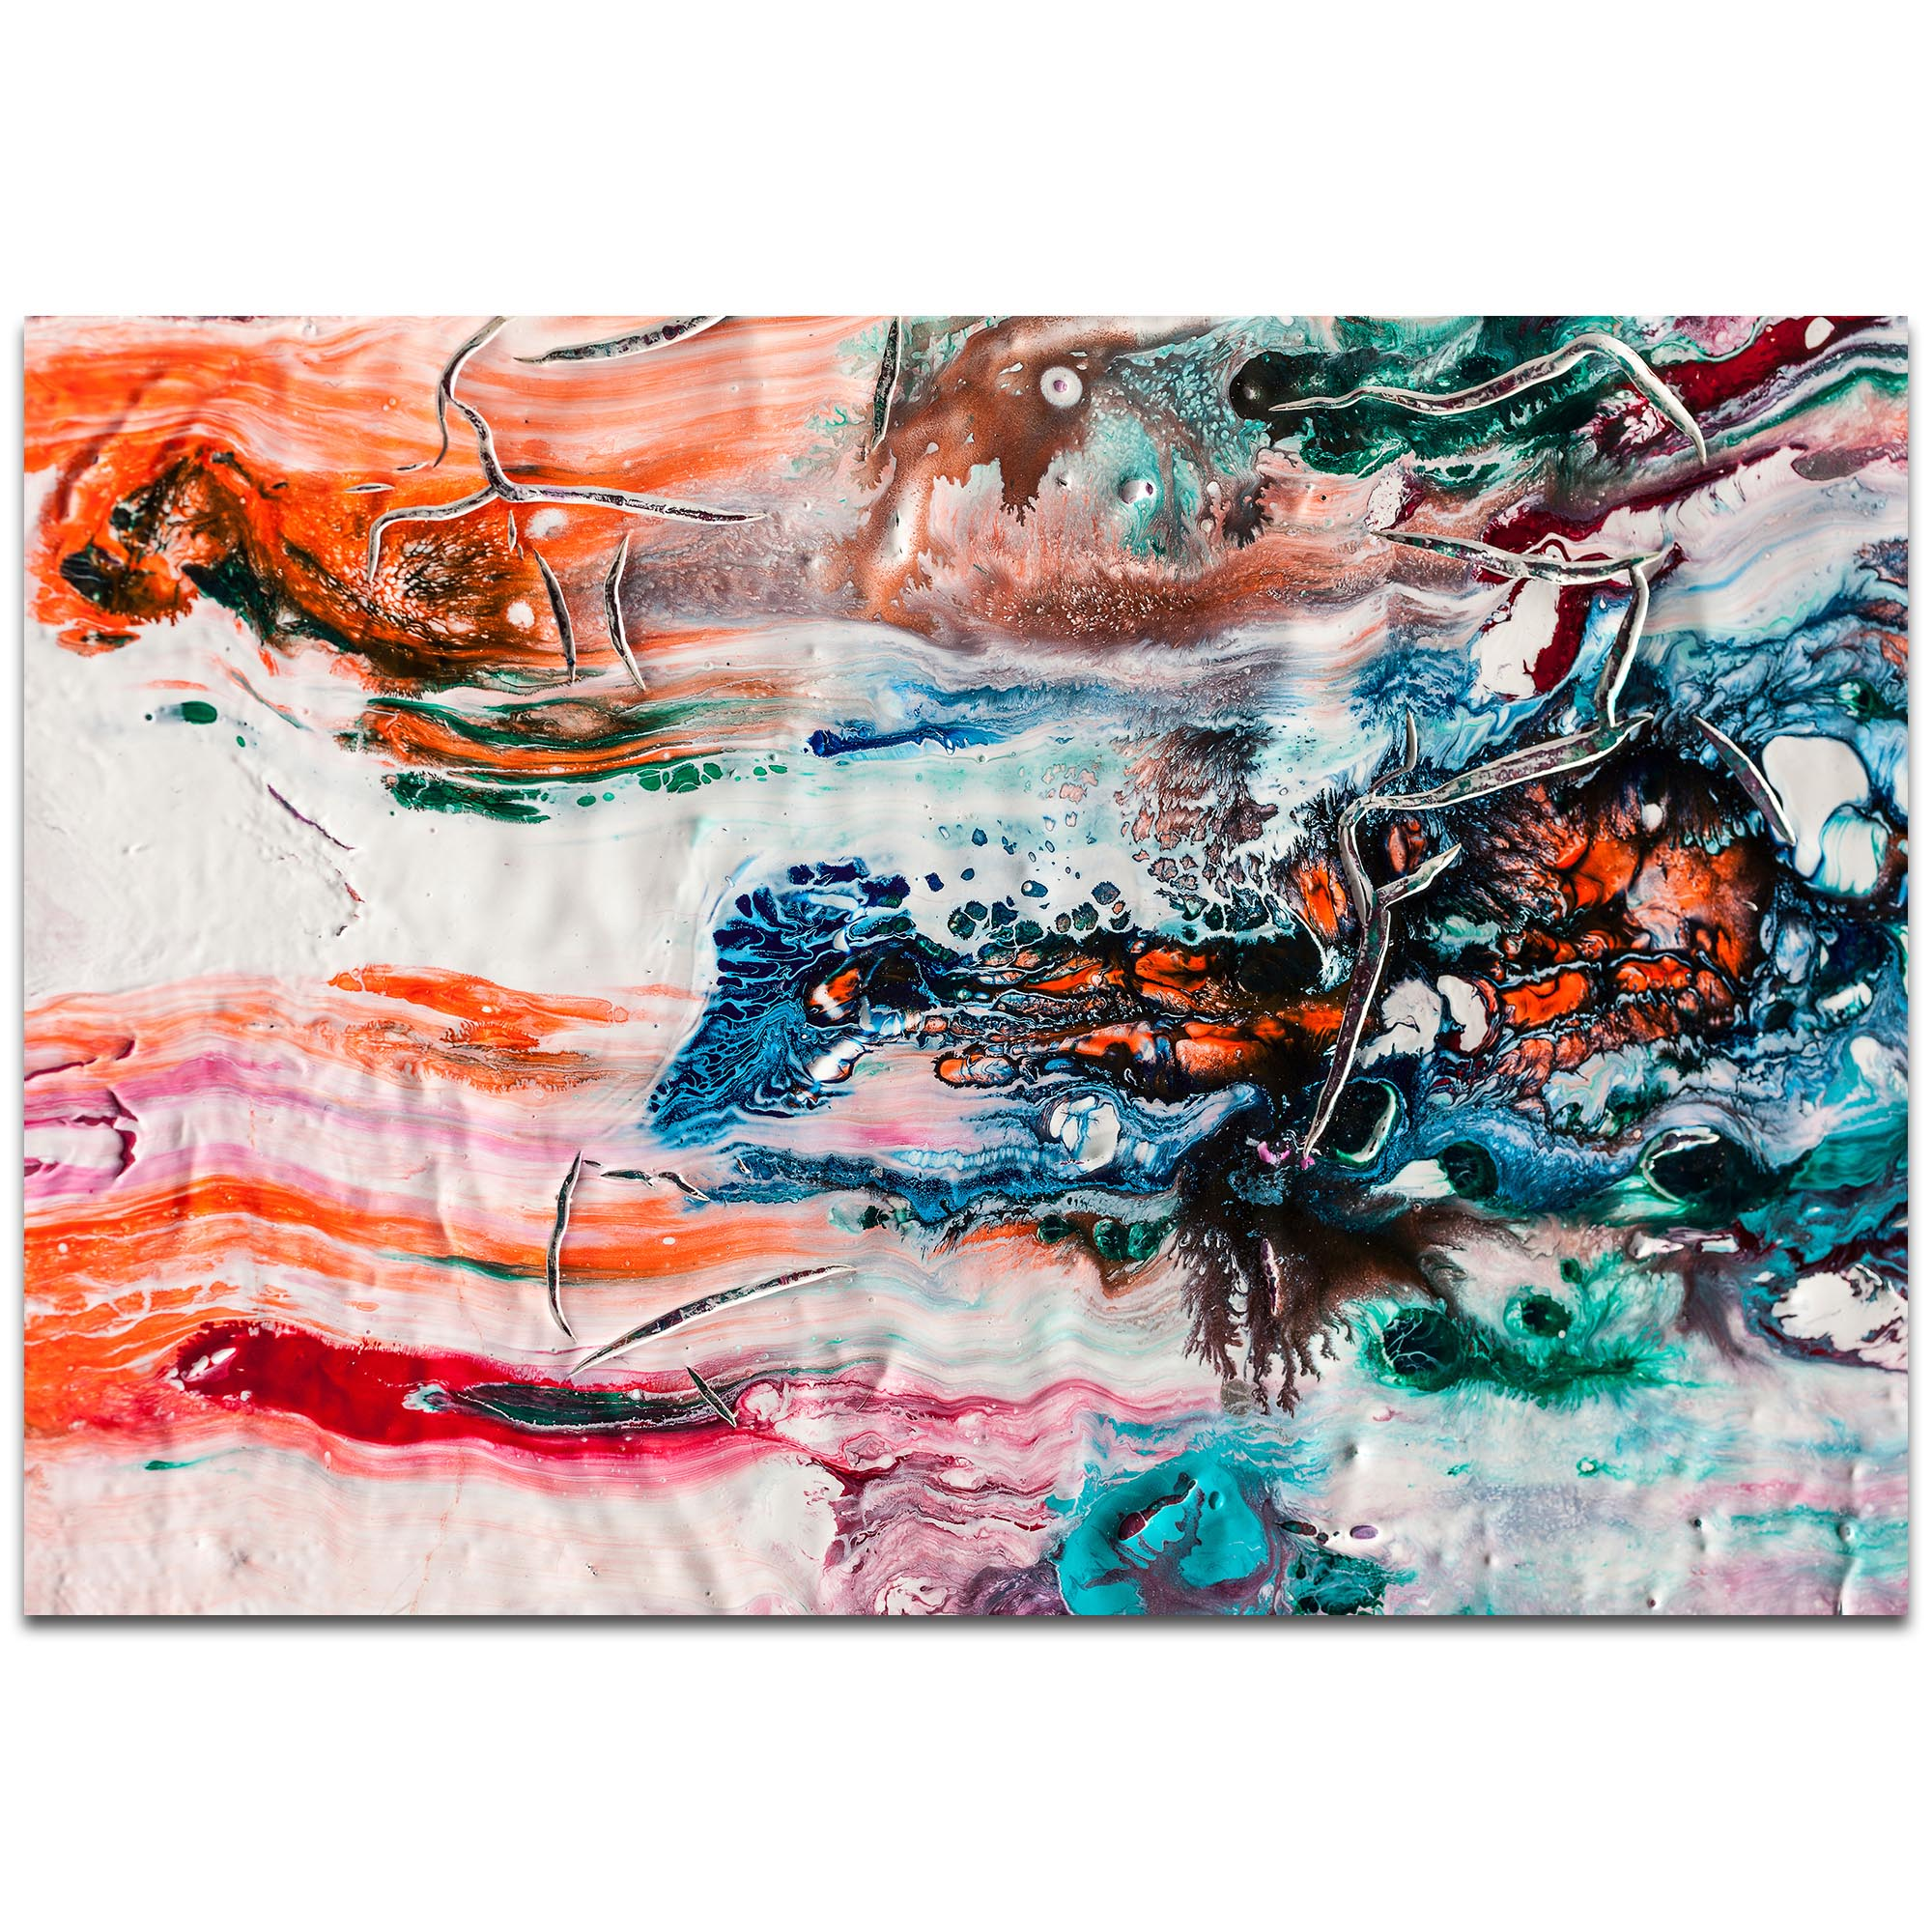 Abstract Wall Art 'Sunset on Her Breath 1' - Colorful Urban Decor on Metal or Plexiglass